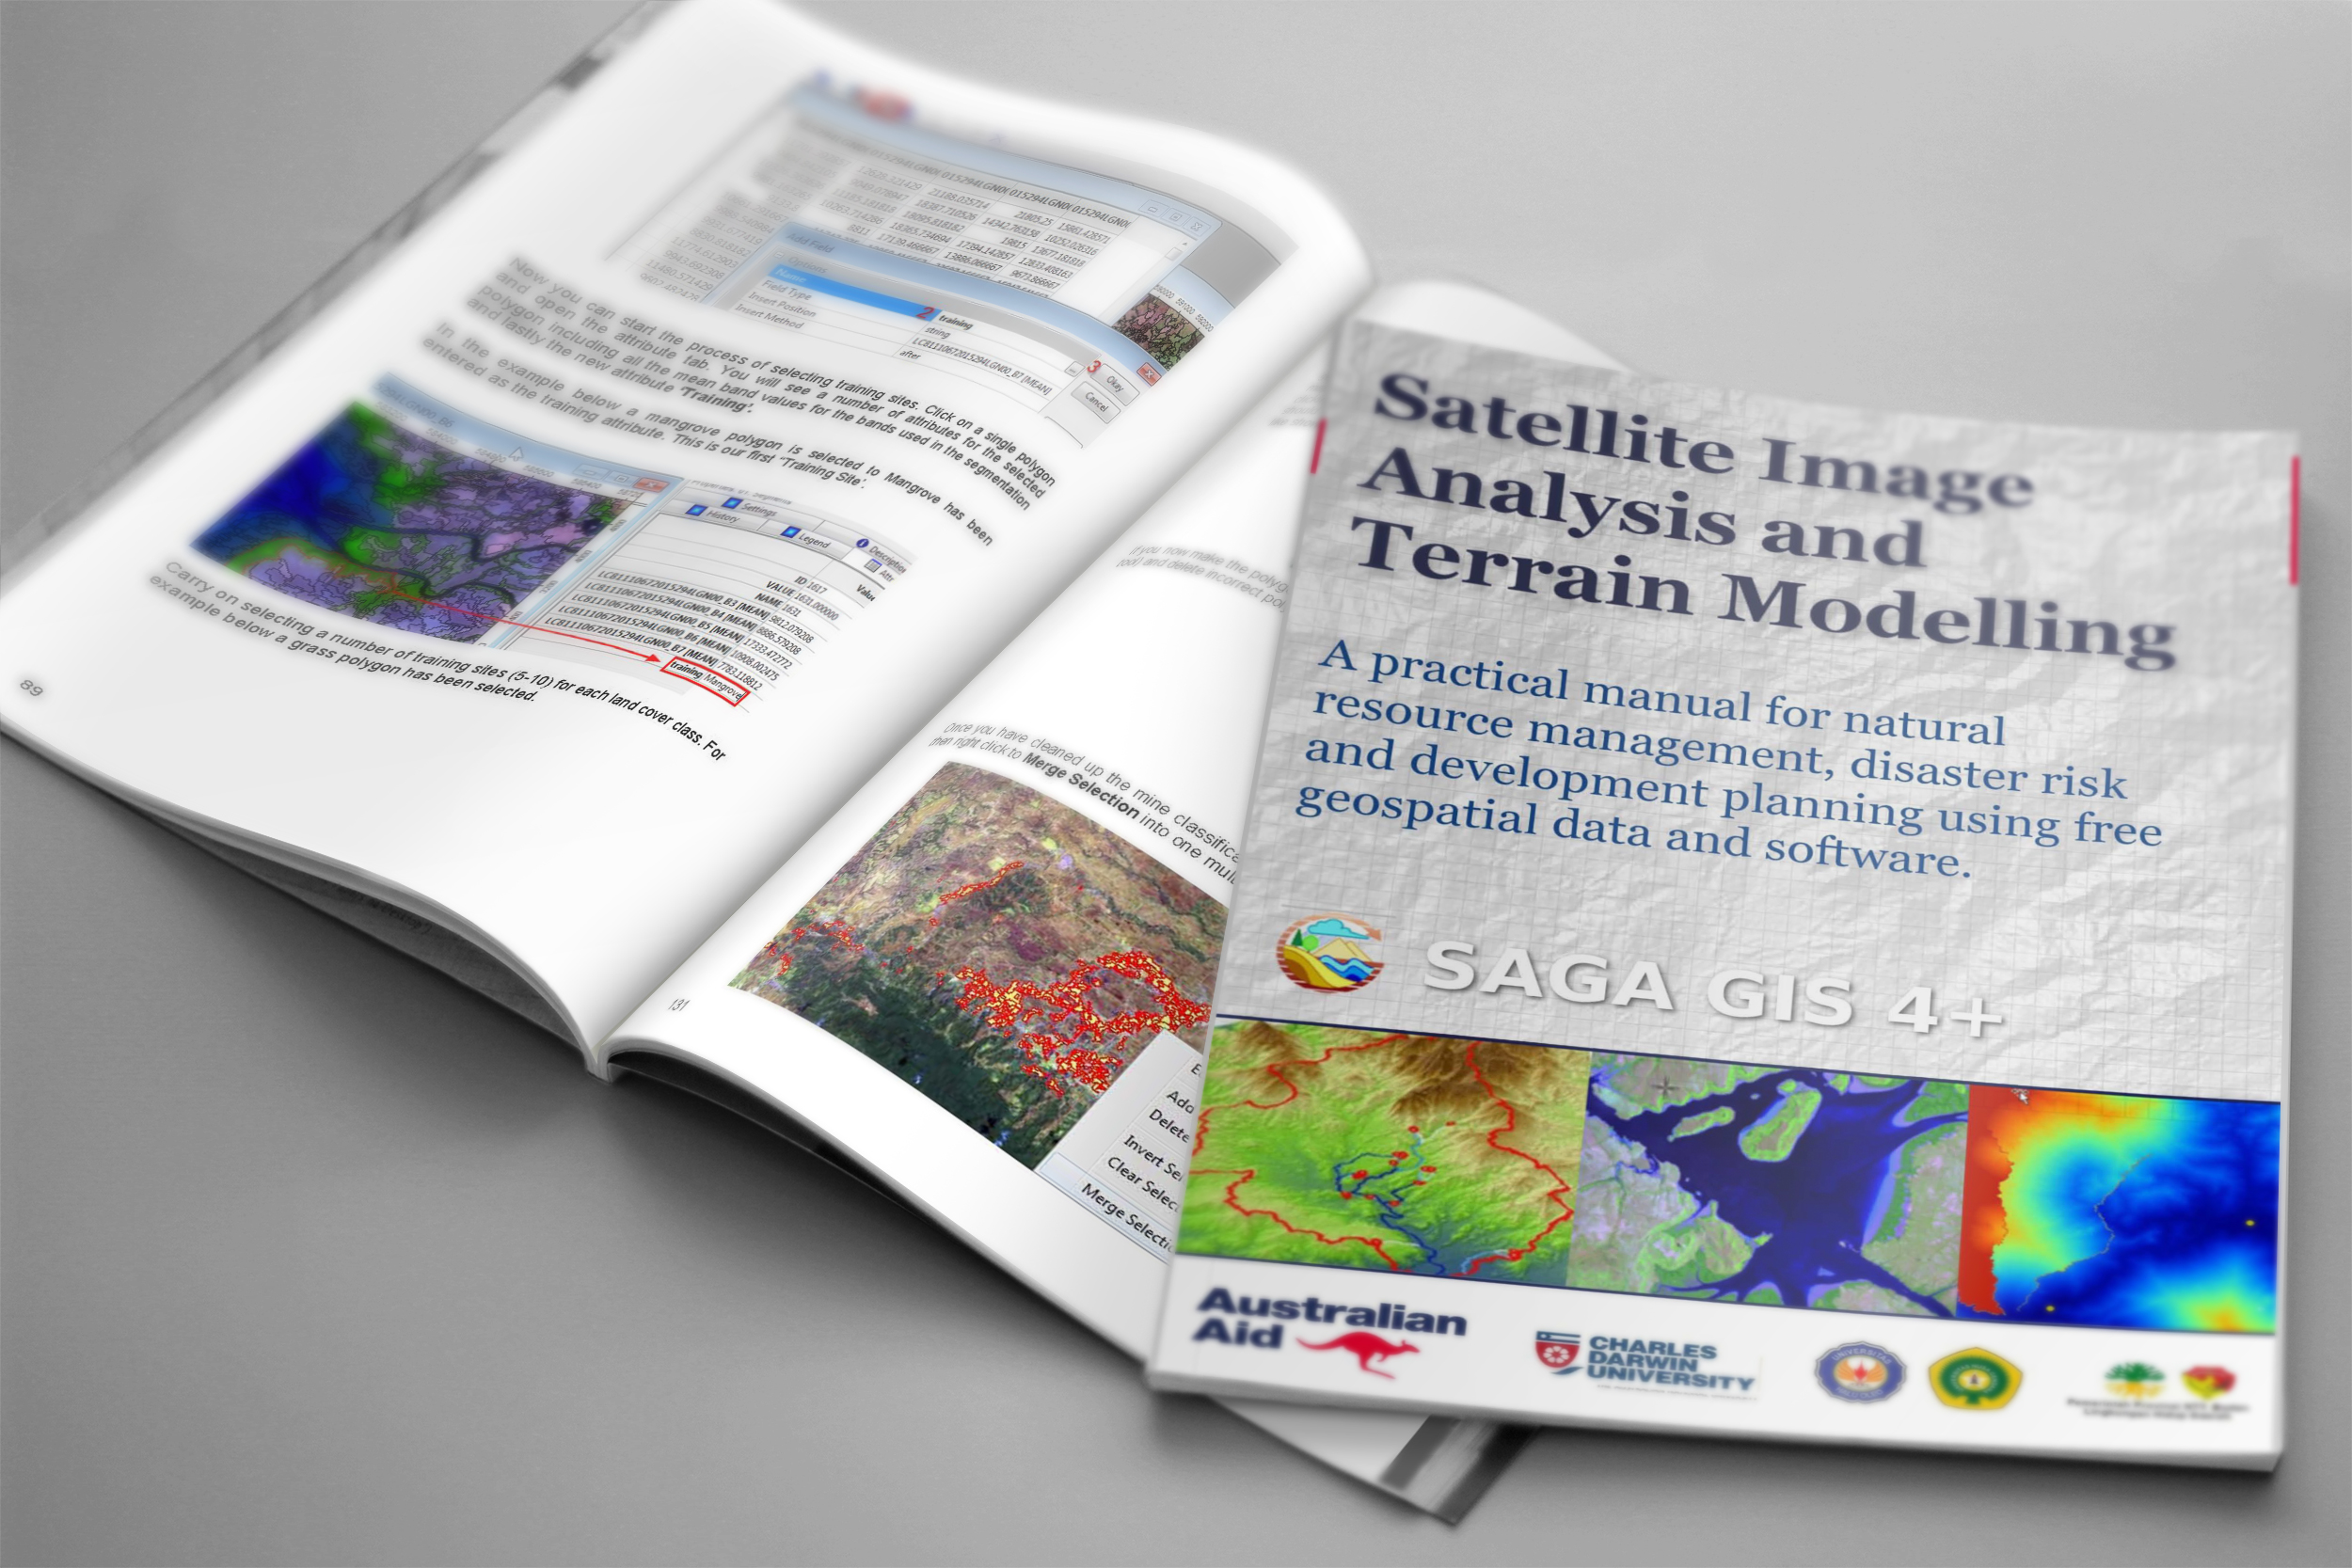 Free Download - Satellite Image Analysis and Terrain Modelling